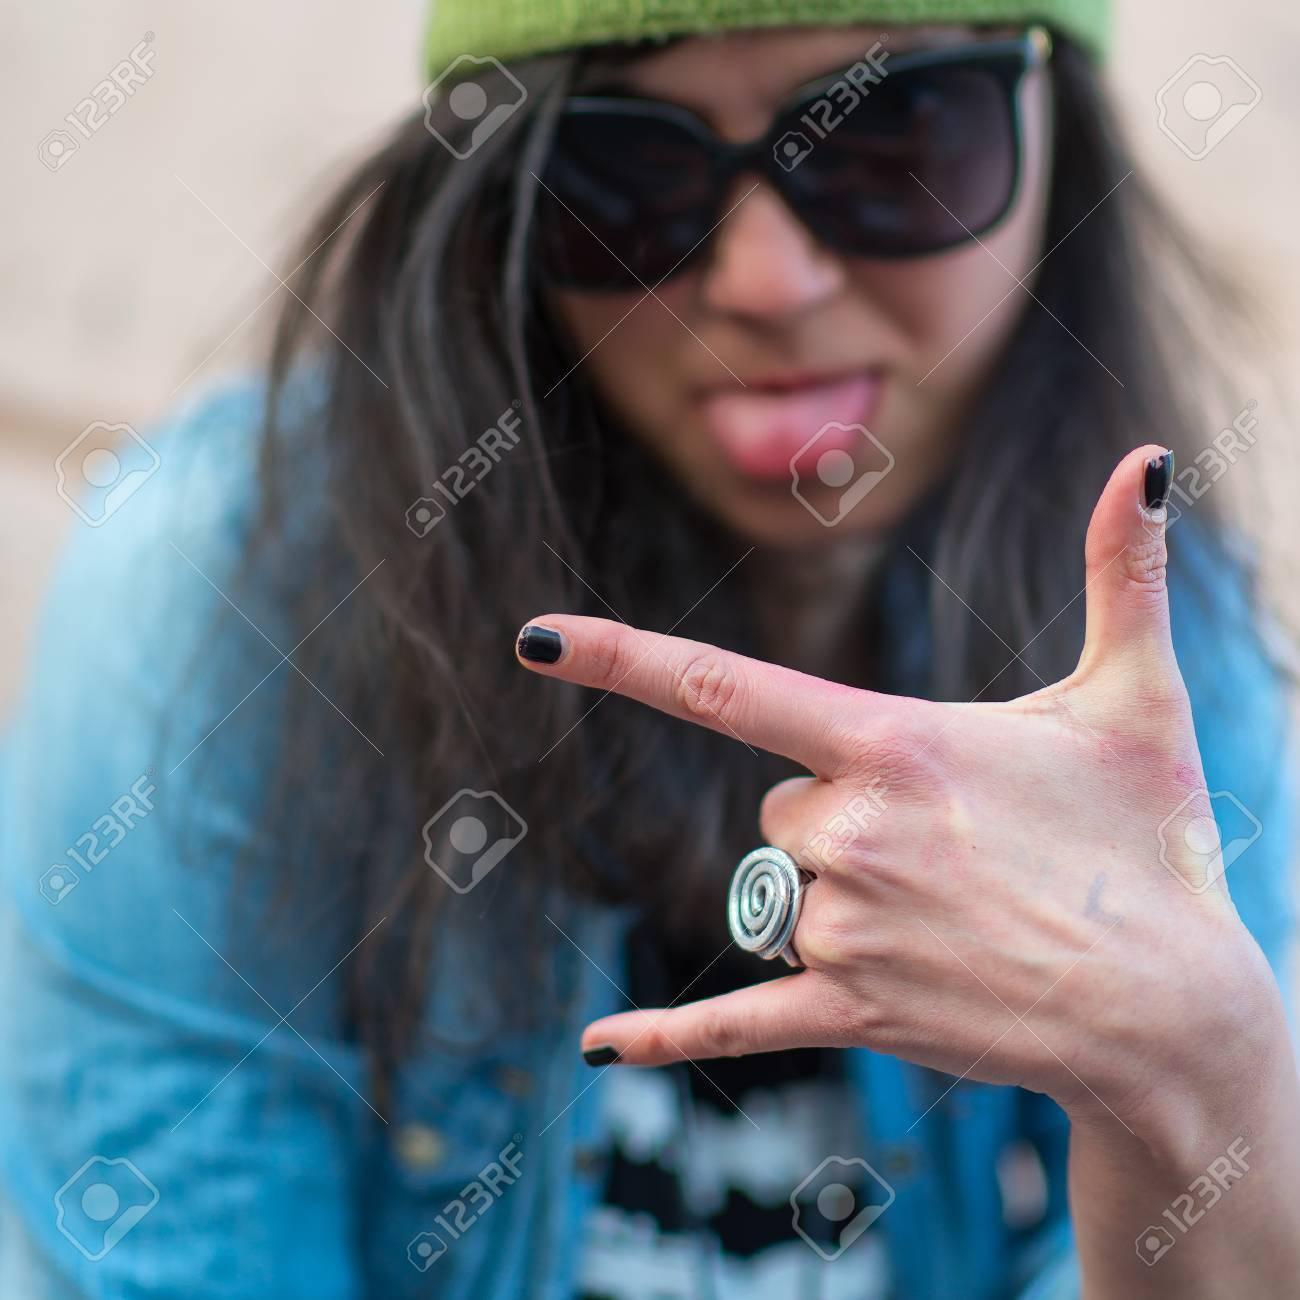 Hip hop rap girl with three fingers - 54848703